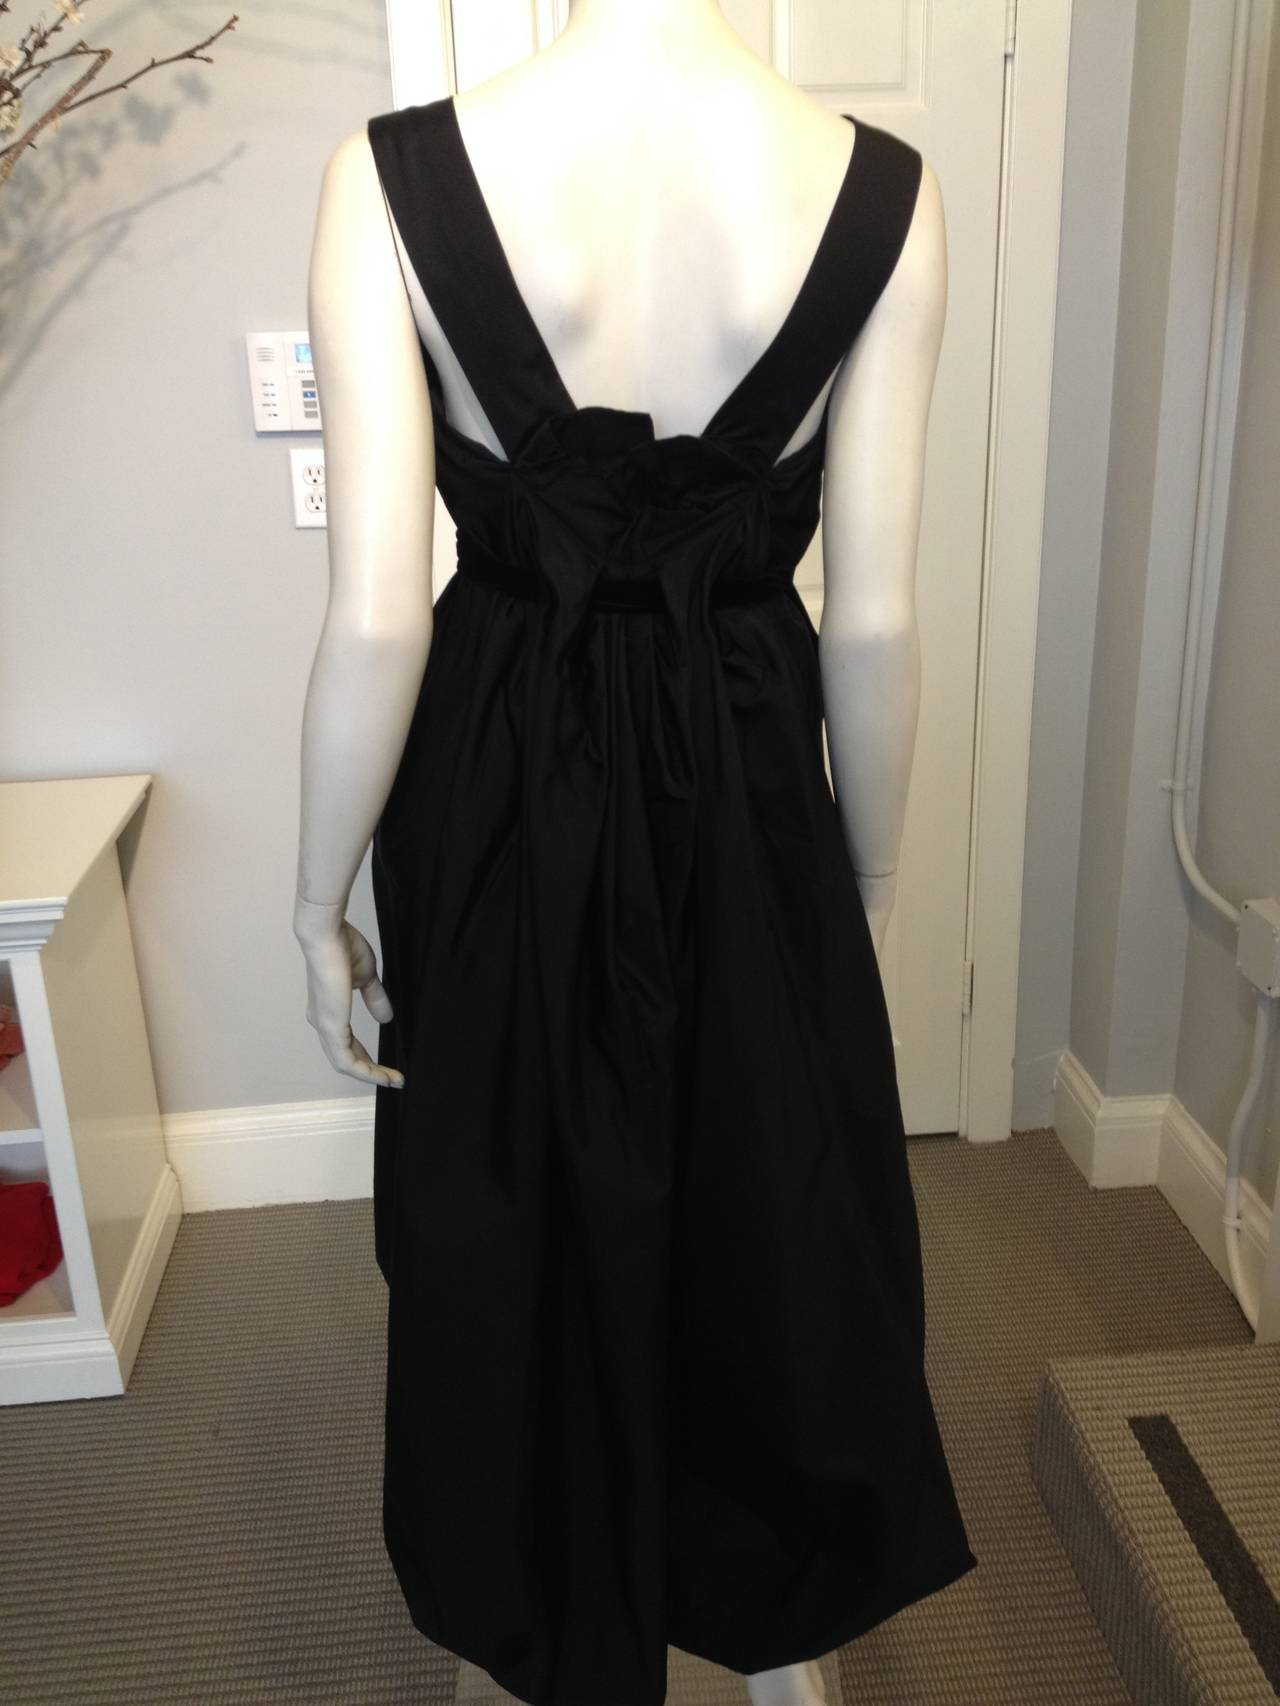 Yves Saint Laurent Black Cocktail Dress 3